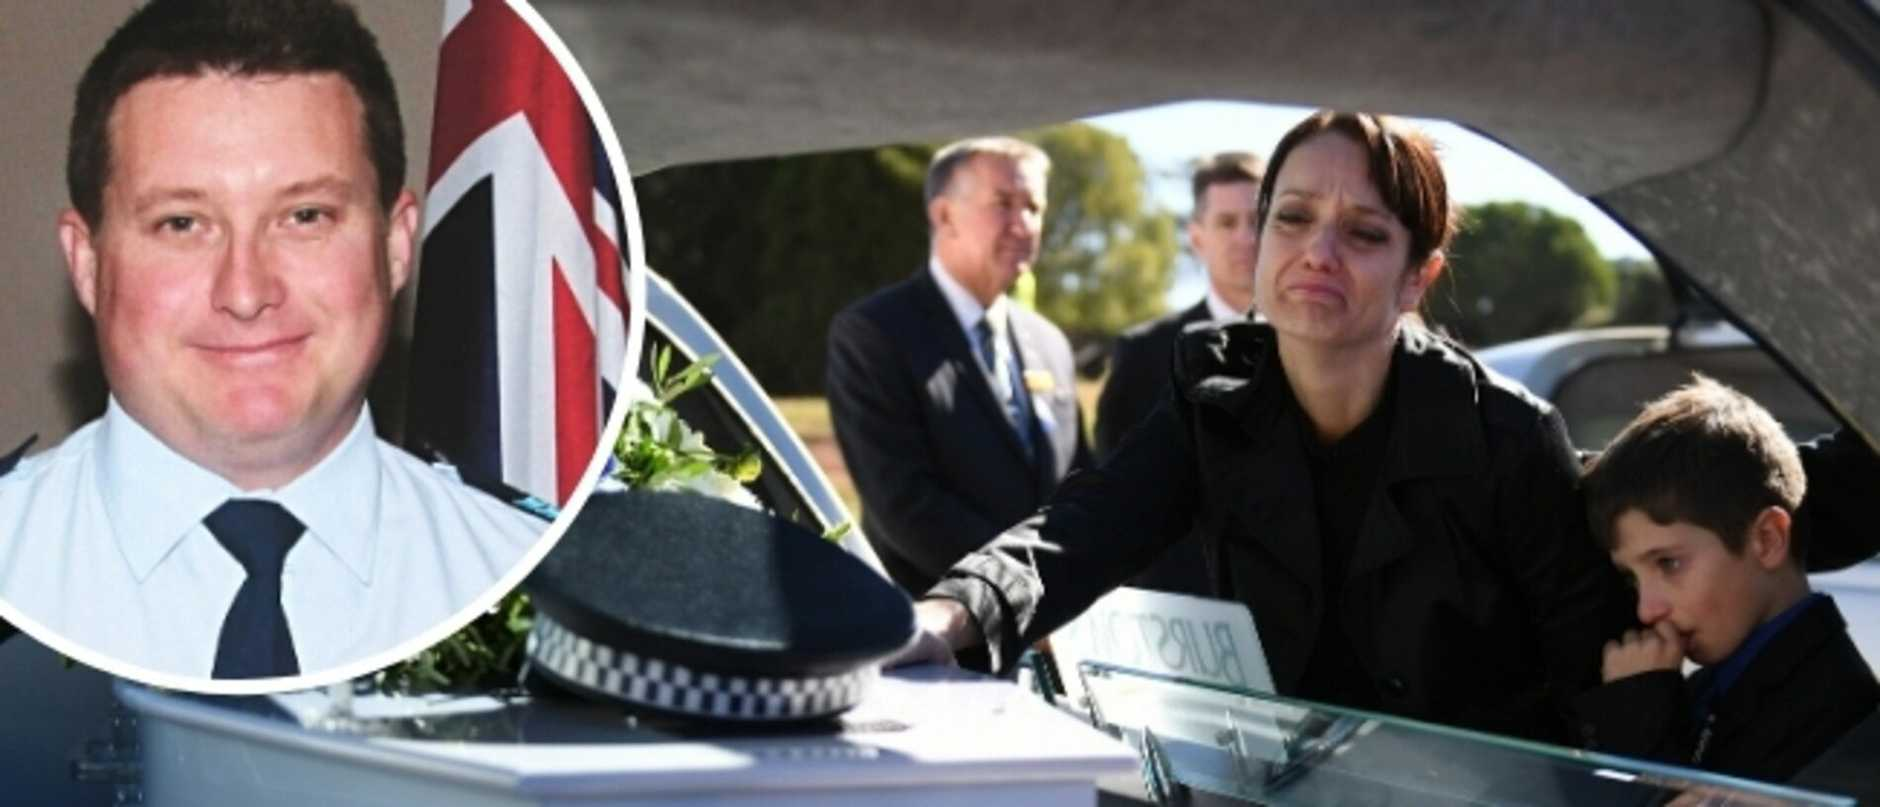 Slain police hero Brett Forte's grieving widow Susan Forte has revealed how she was harassed by strangers in the wake of her husband's killing.